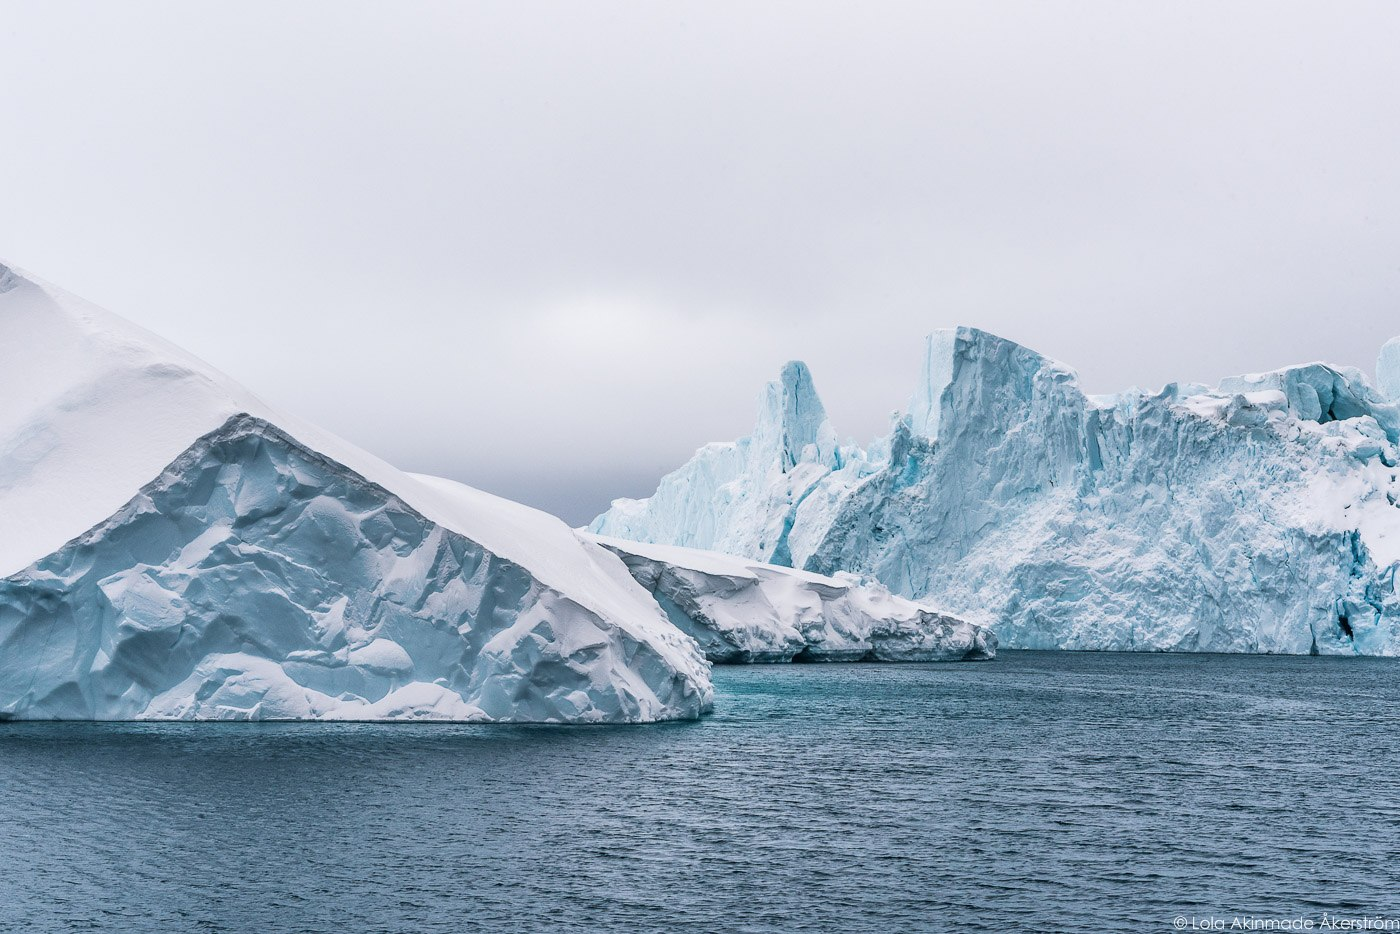 Sailing with icebergs in Greenland - Photo by Lola Akinmade Åkerström